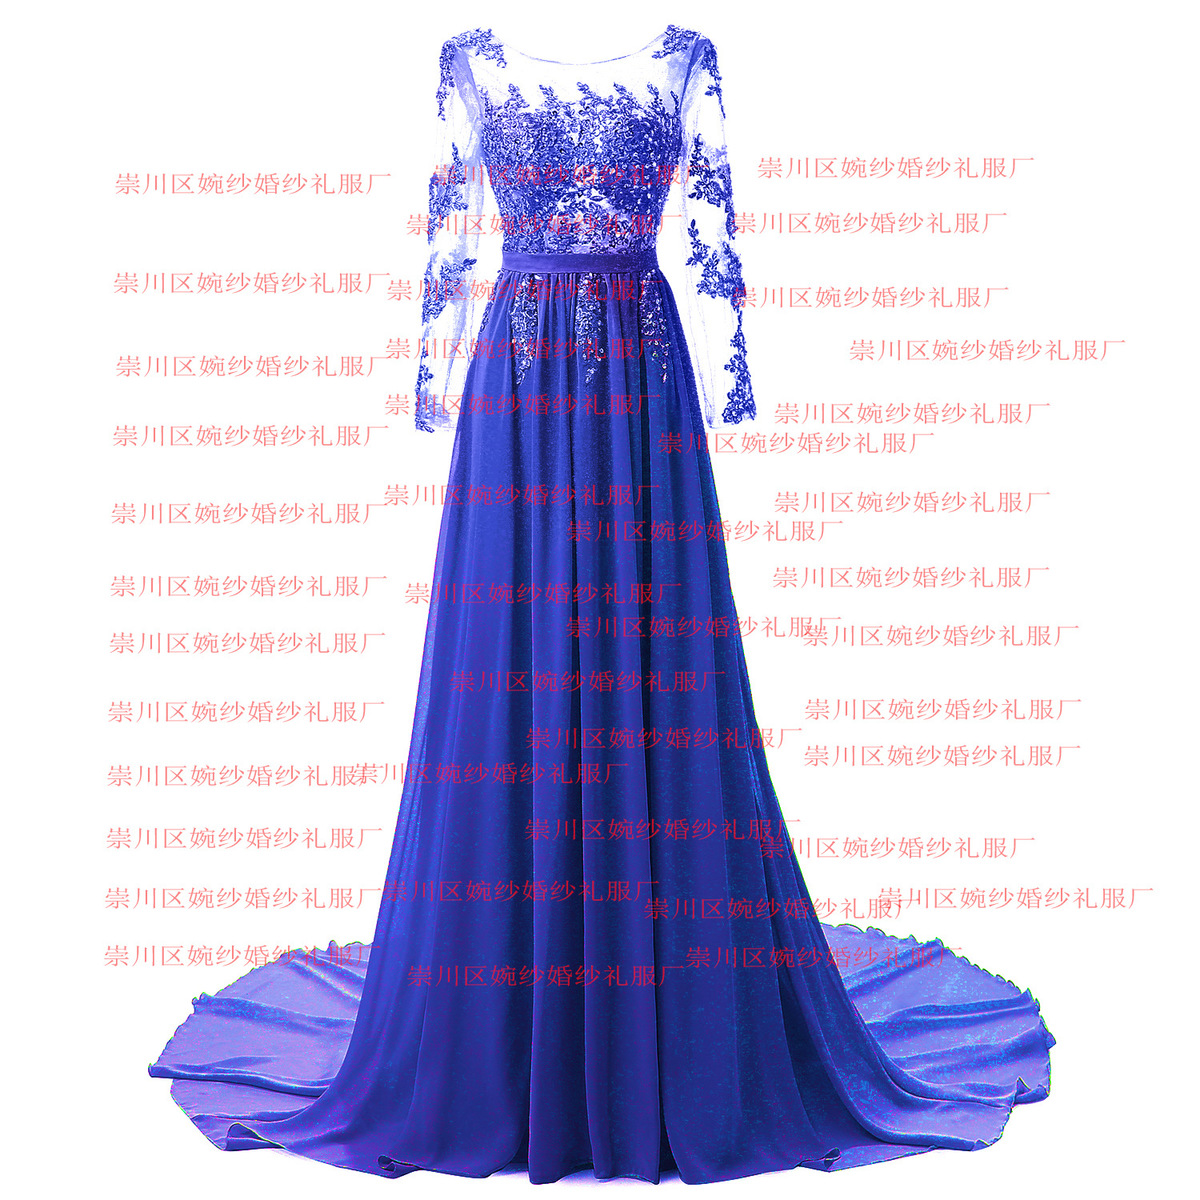 2017 New Pattern Wedding formal Dress Full High Evening Long Sleeve Hollow 48 hour shipping Cocktail Party Prom